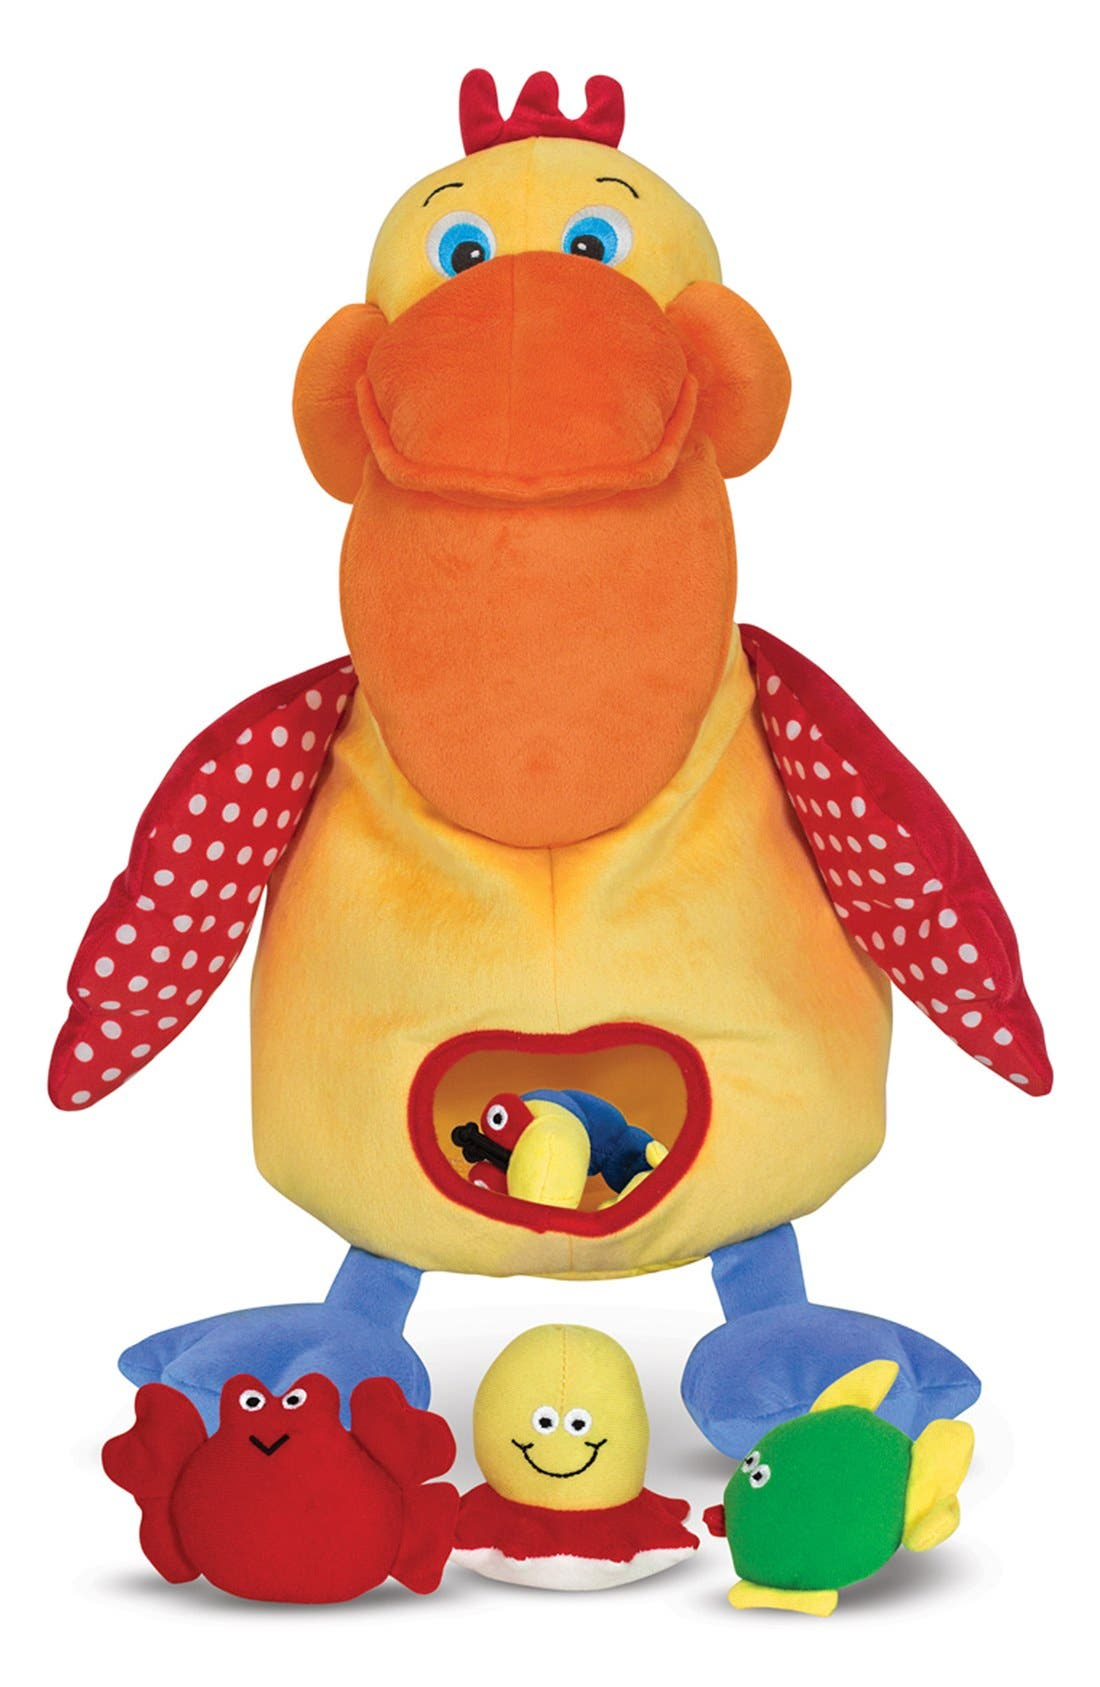 MELISSA & DOUG 'Hungry Pelican' Plush Toy